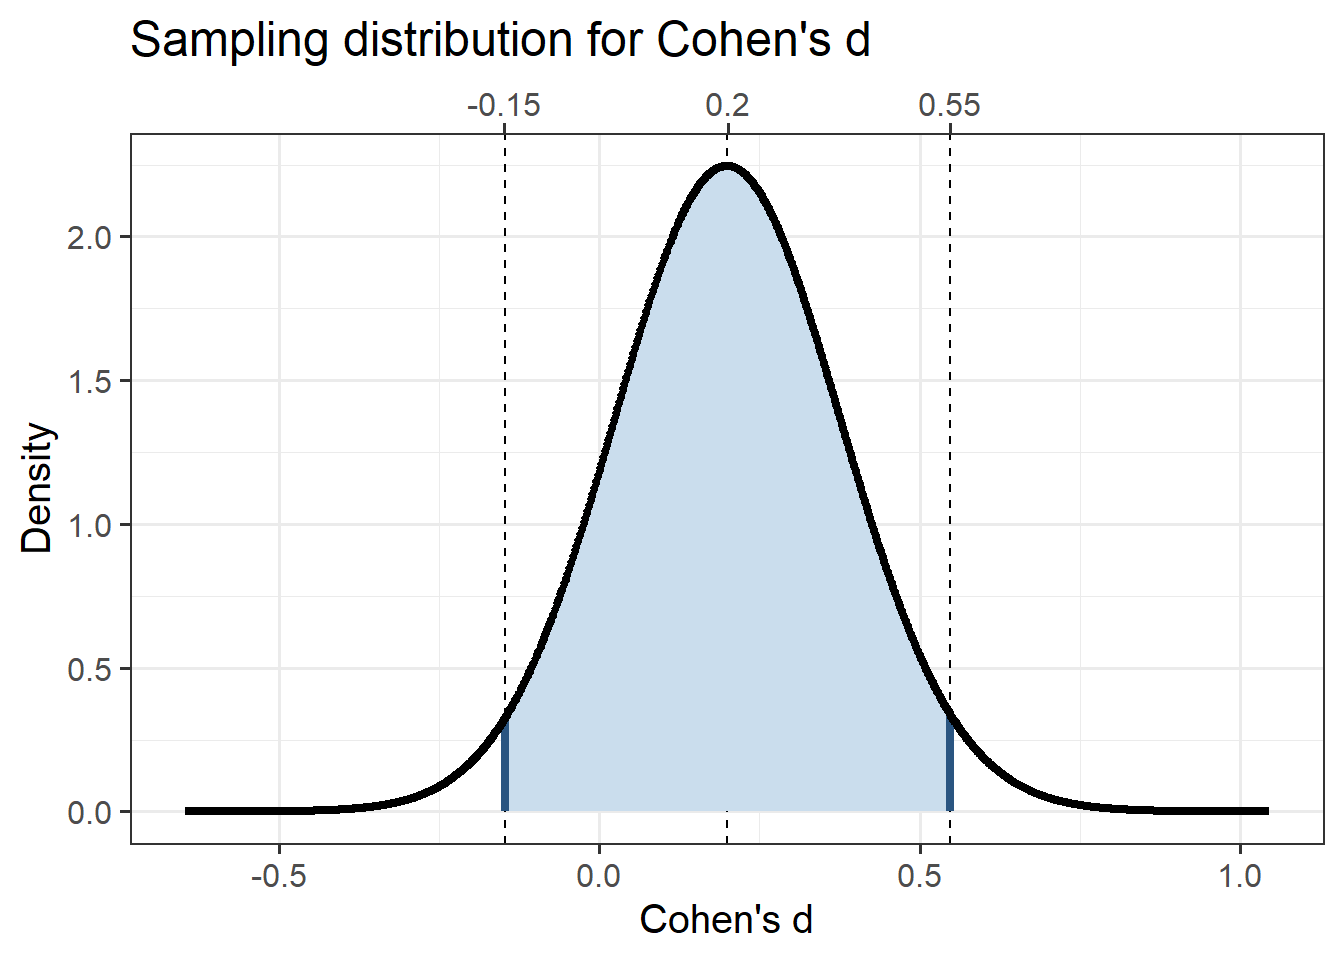 Cohen's d's sampling distribution for a small population effect size (d = 0.2) and for a 2-cell design with 80\% power (i.e. 64 participants per group).